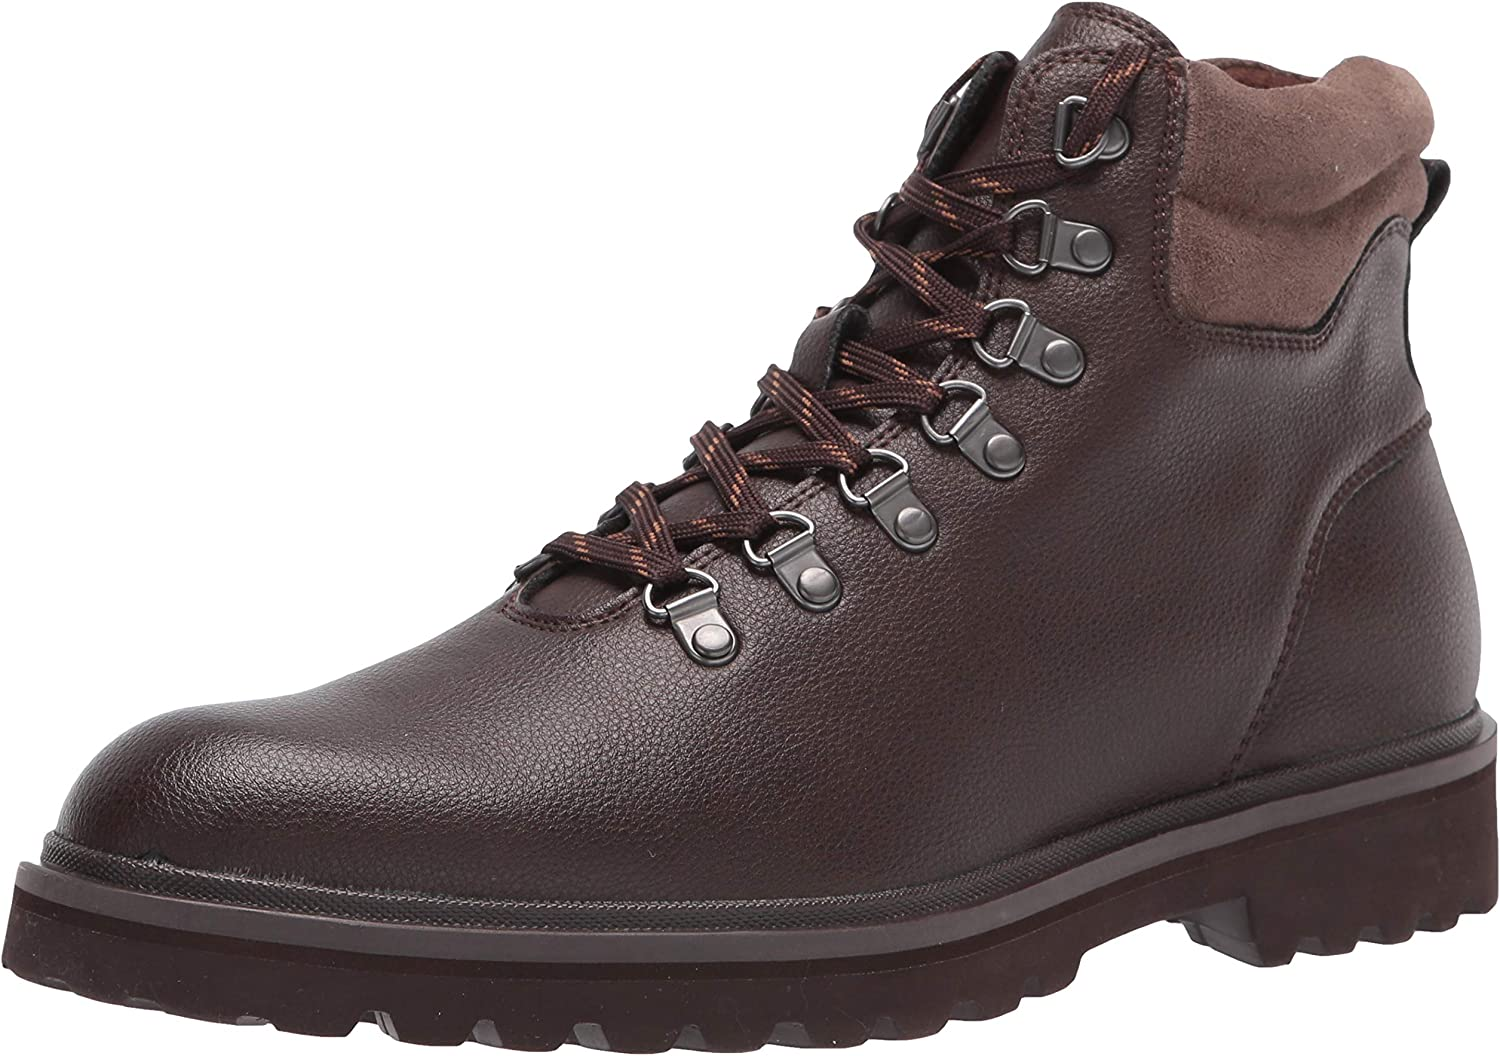 Kenneth Cole Reaction Men's Alpine Fashion Boots Don't miss the Special price campaign Lug